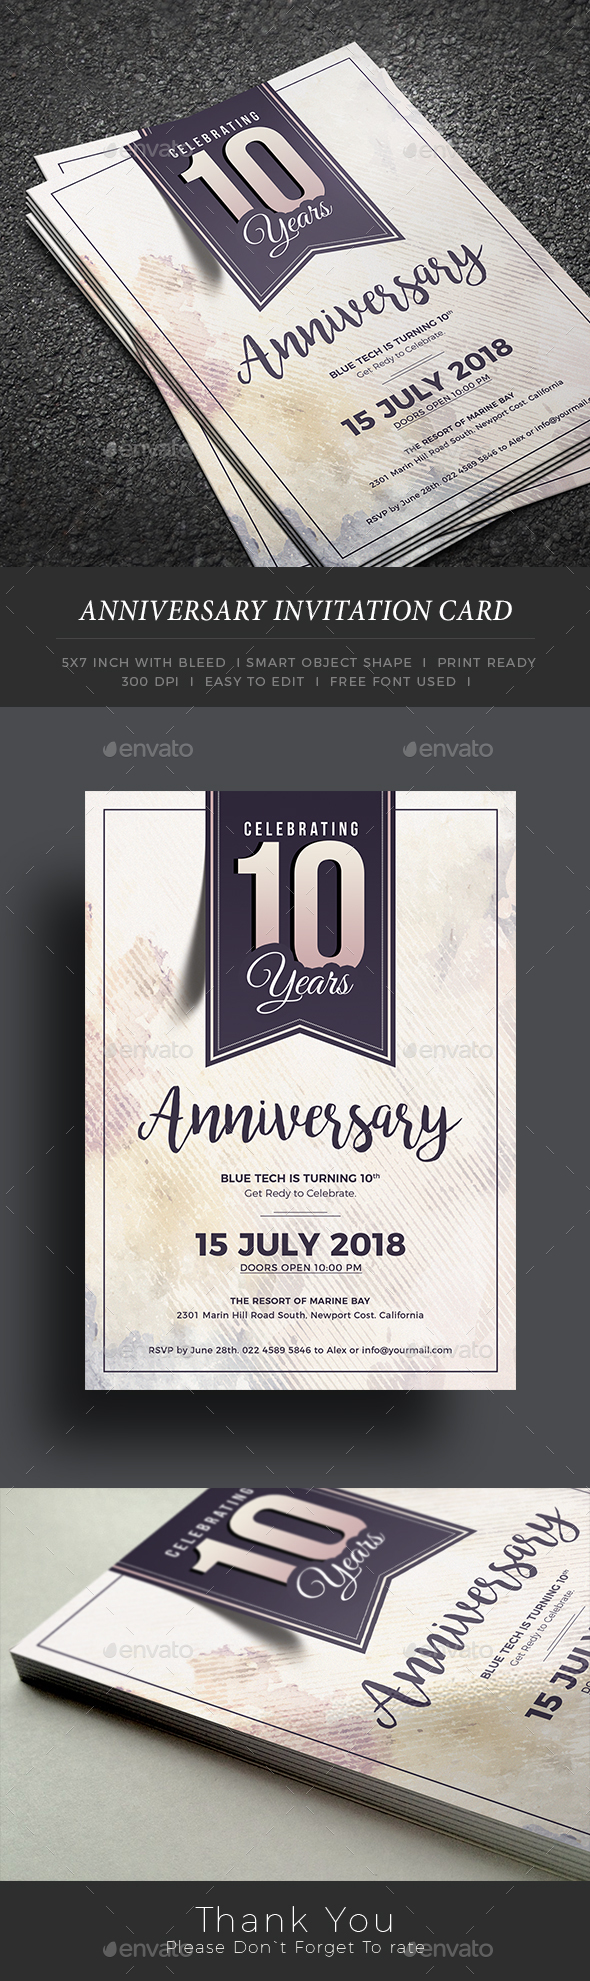 Anniversary Card Designs & Templates from GraphicRiver